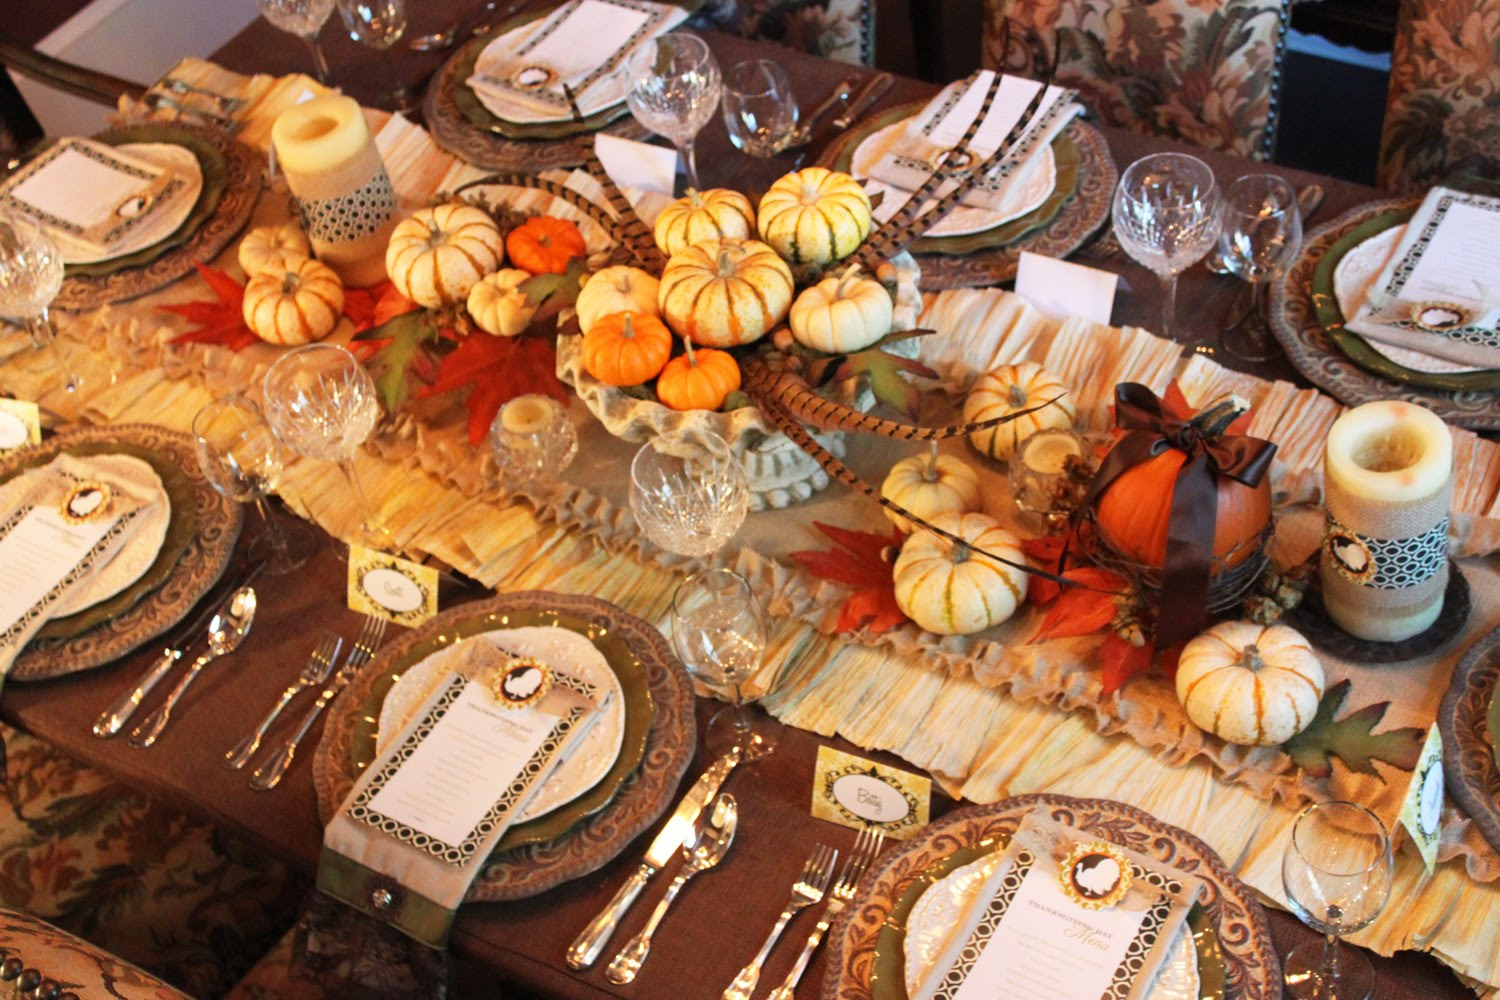 Dining table dining table thanksgiving How to decorate your house for thanksgiving